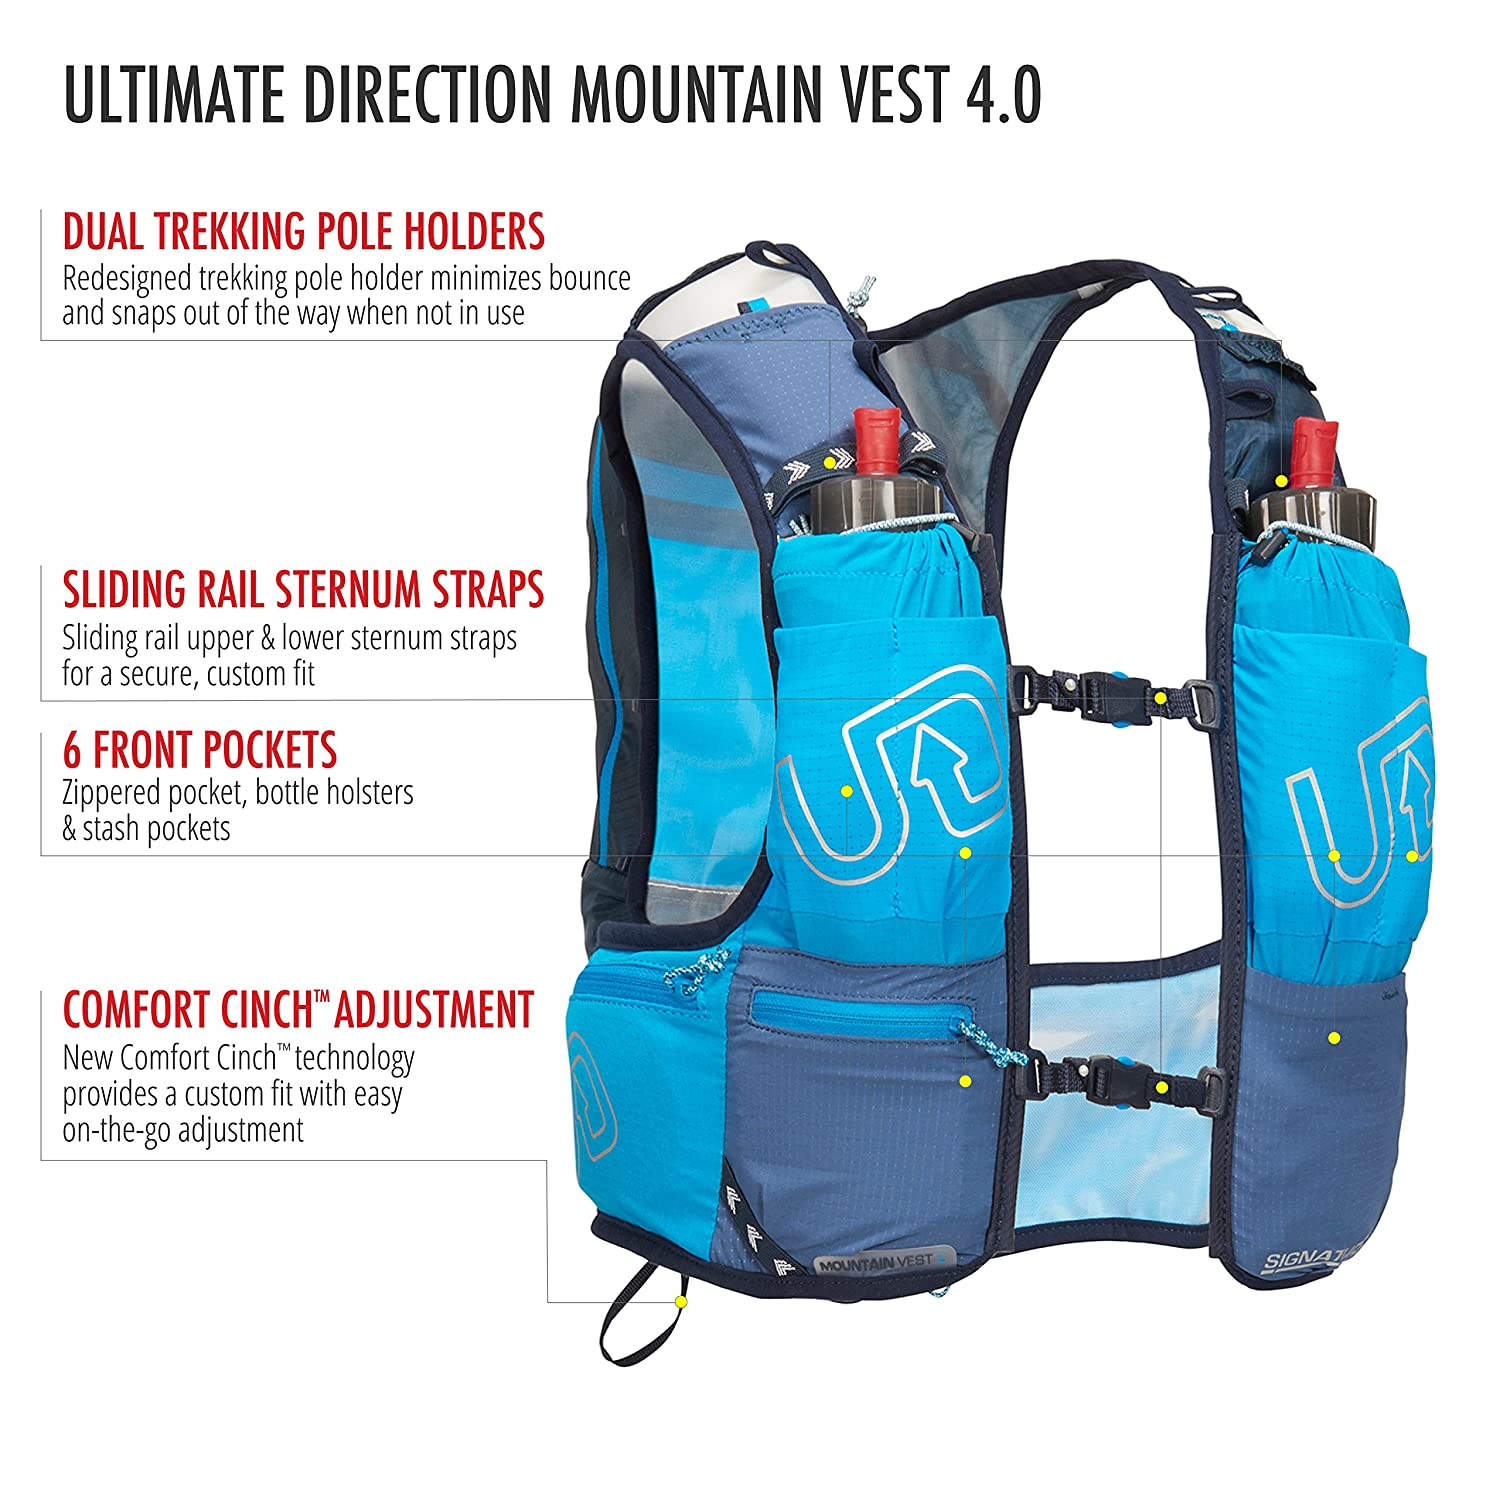 huge selection of 74282 774f0 Ultimate Direction Mountain Vest 4.0